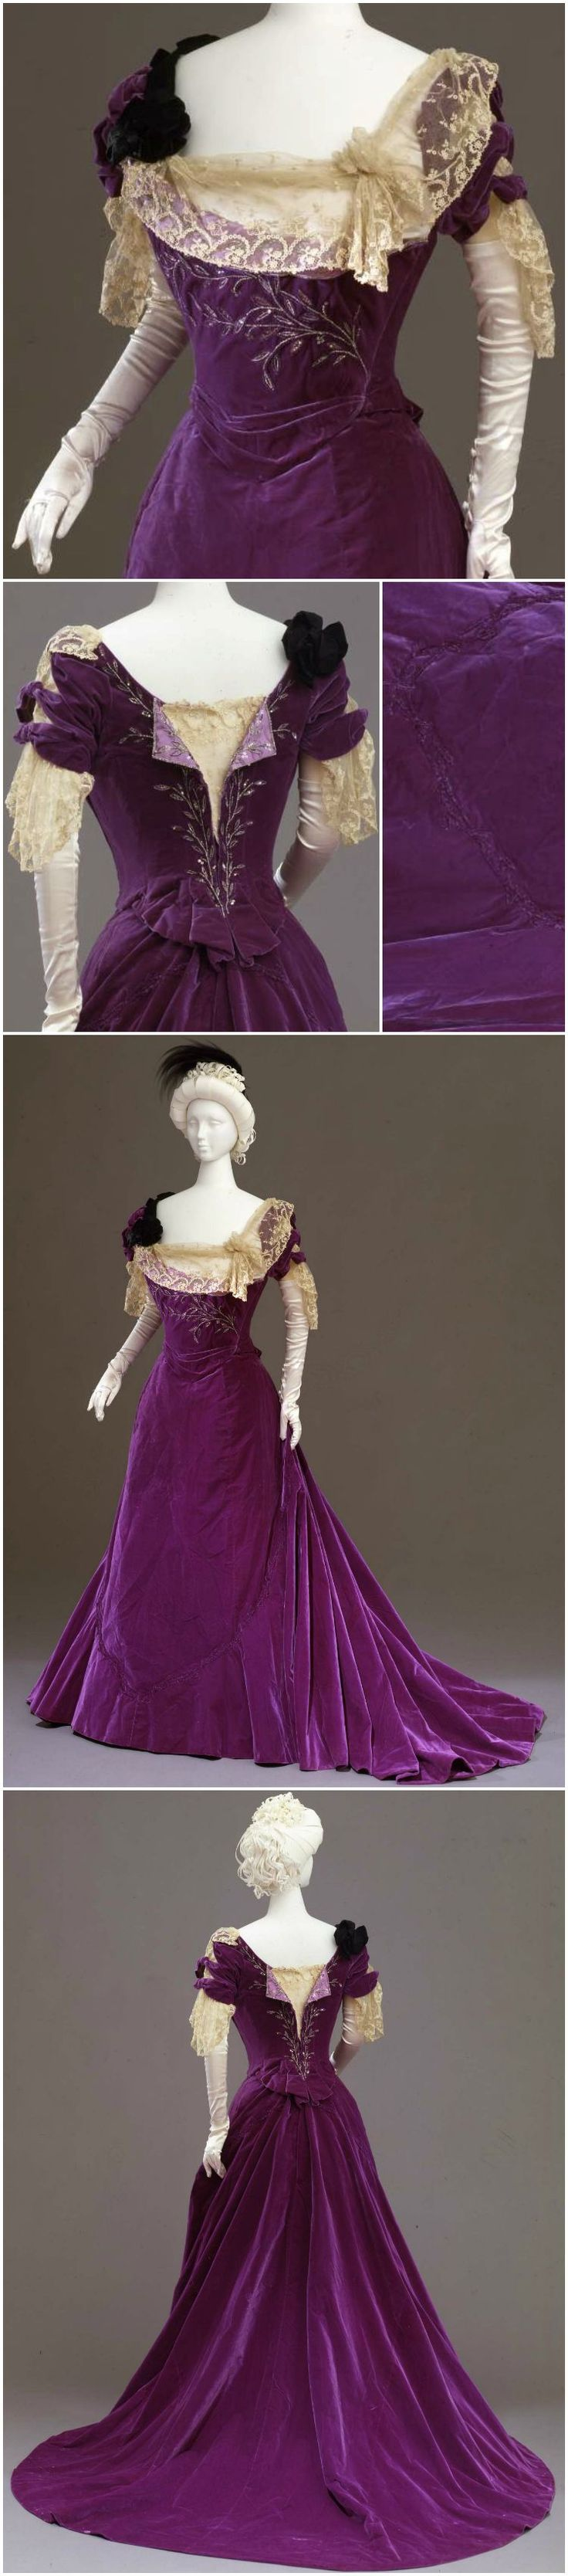 Purple velvet dress in two parts, by Atelier Worth, Paris, circa 1901, at the Pitti Palace Costume Gallery.